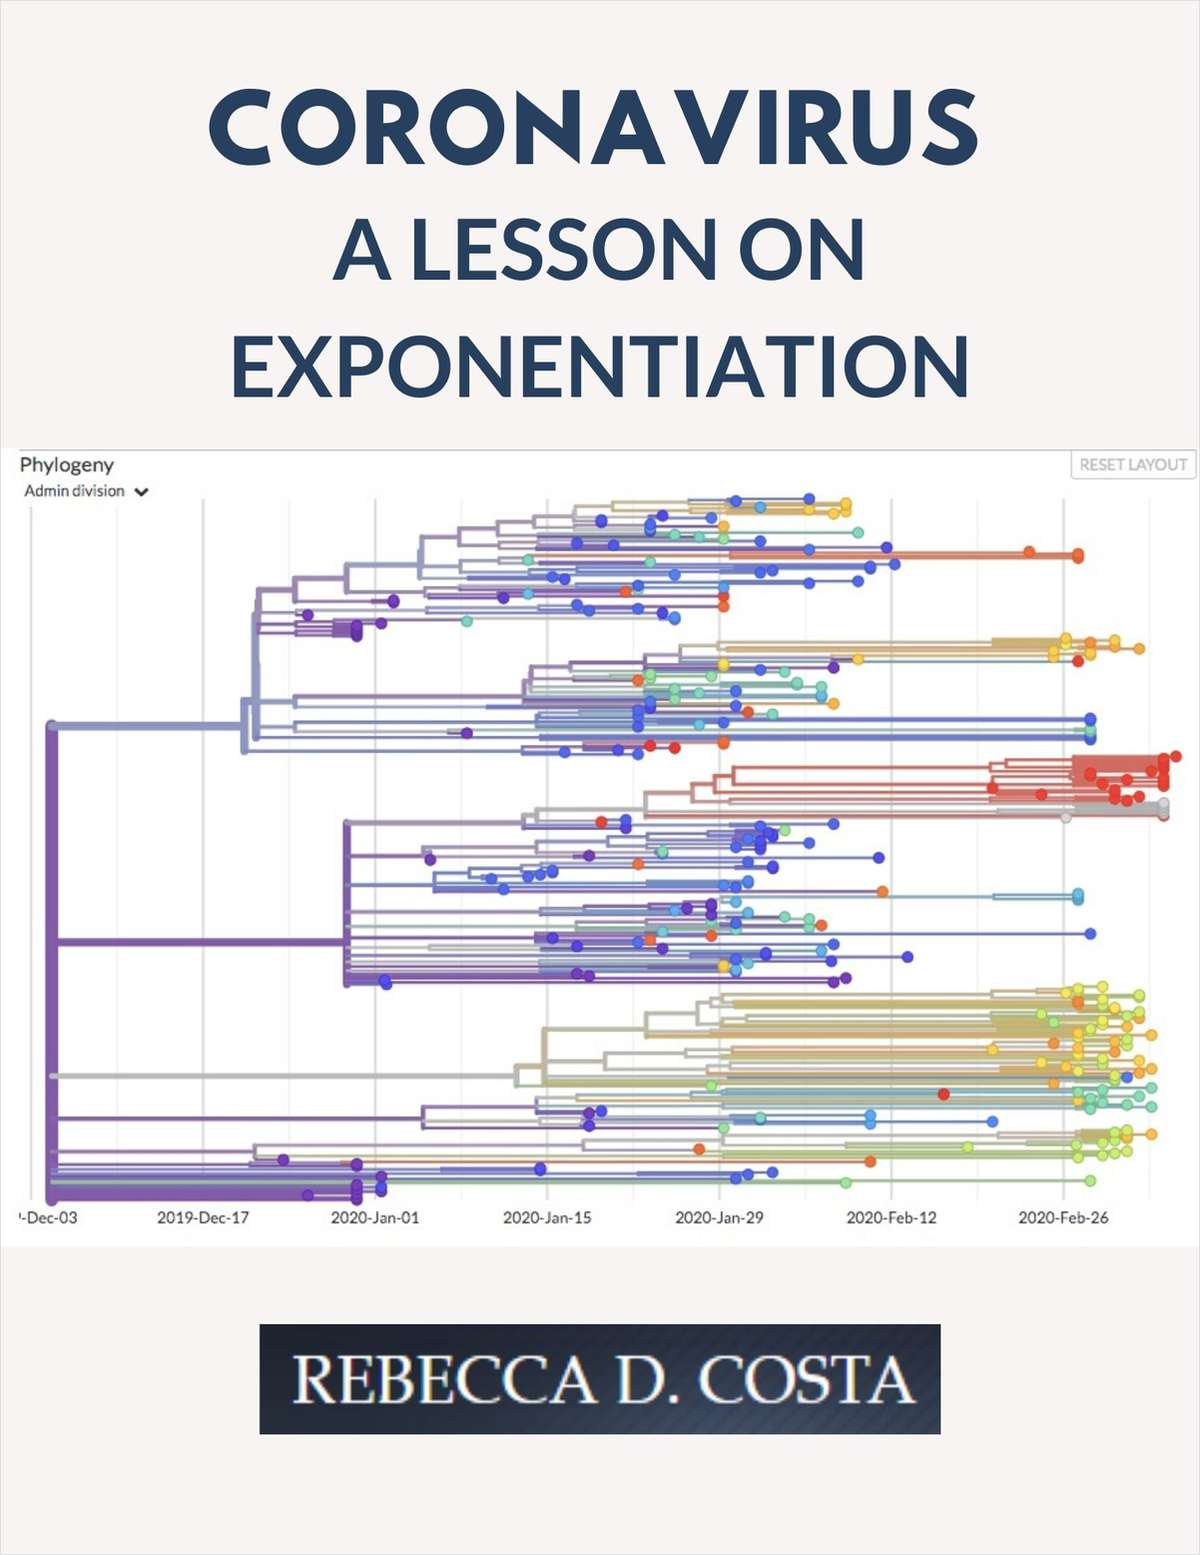 Coronavirus: A Lesson on Exponentiation